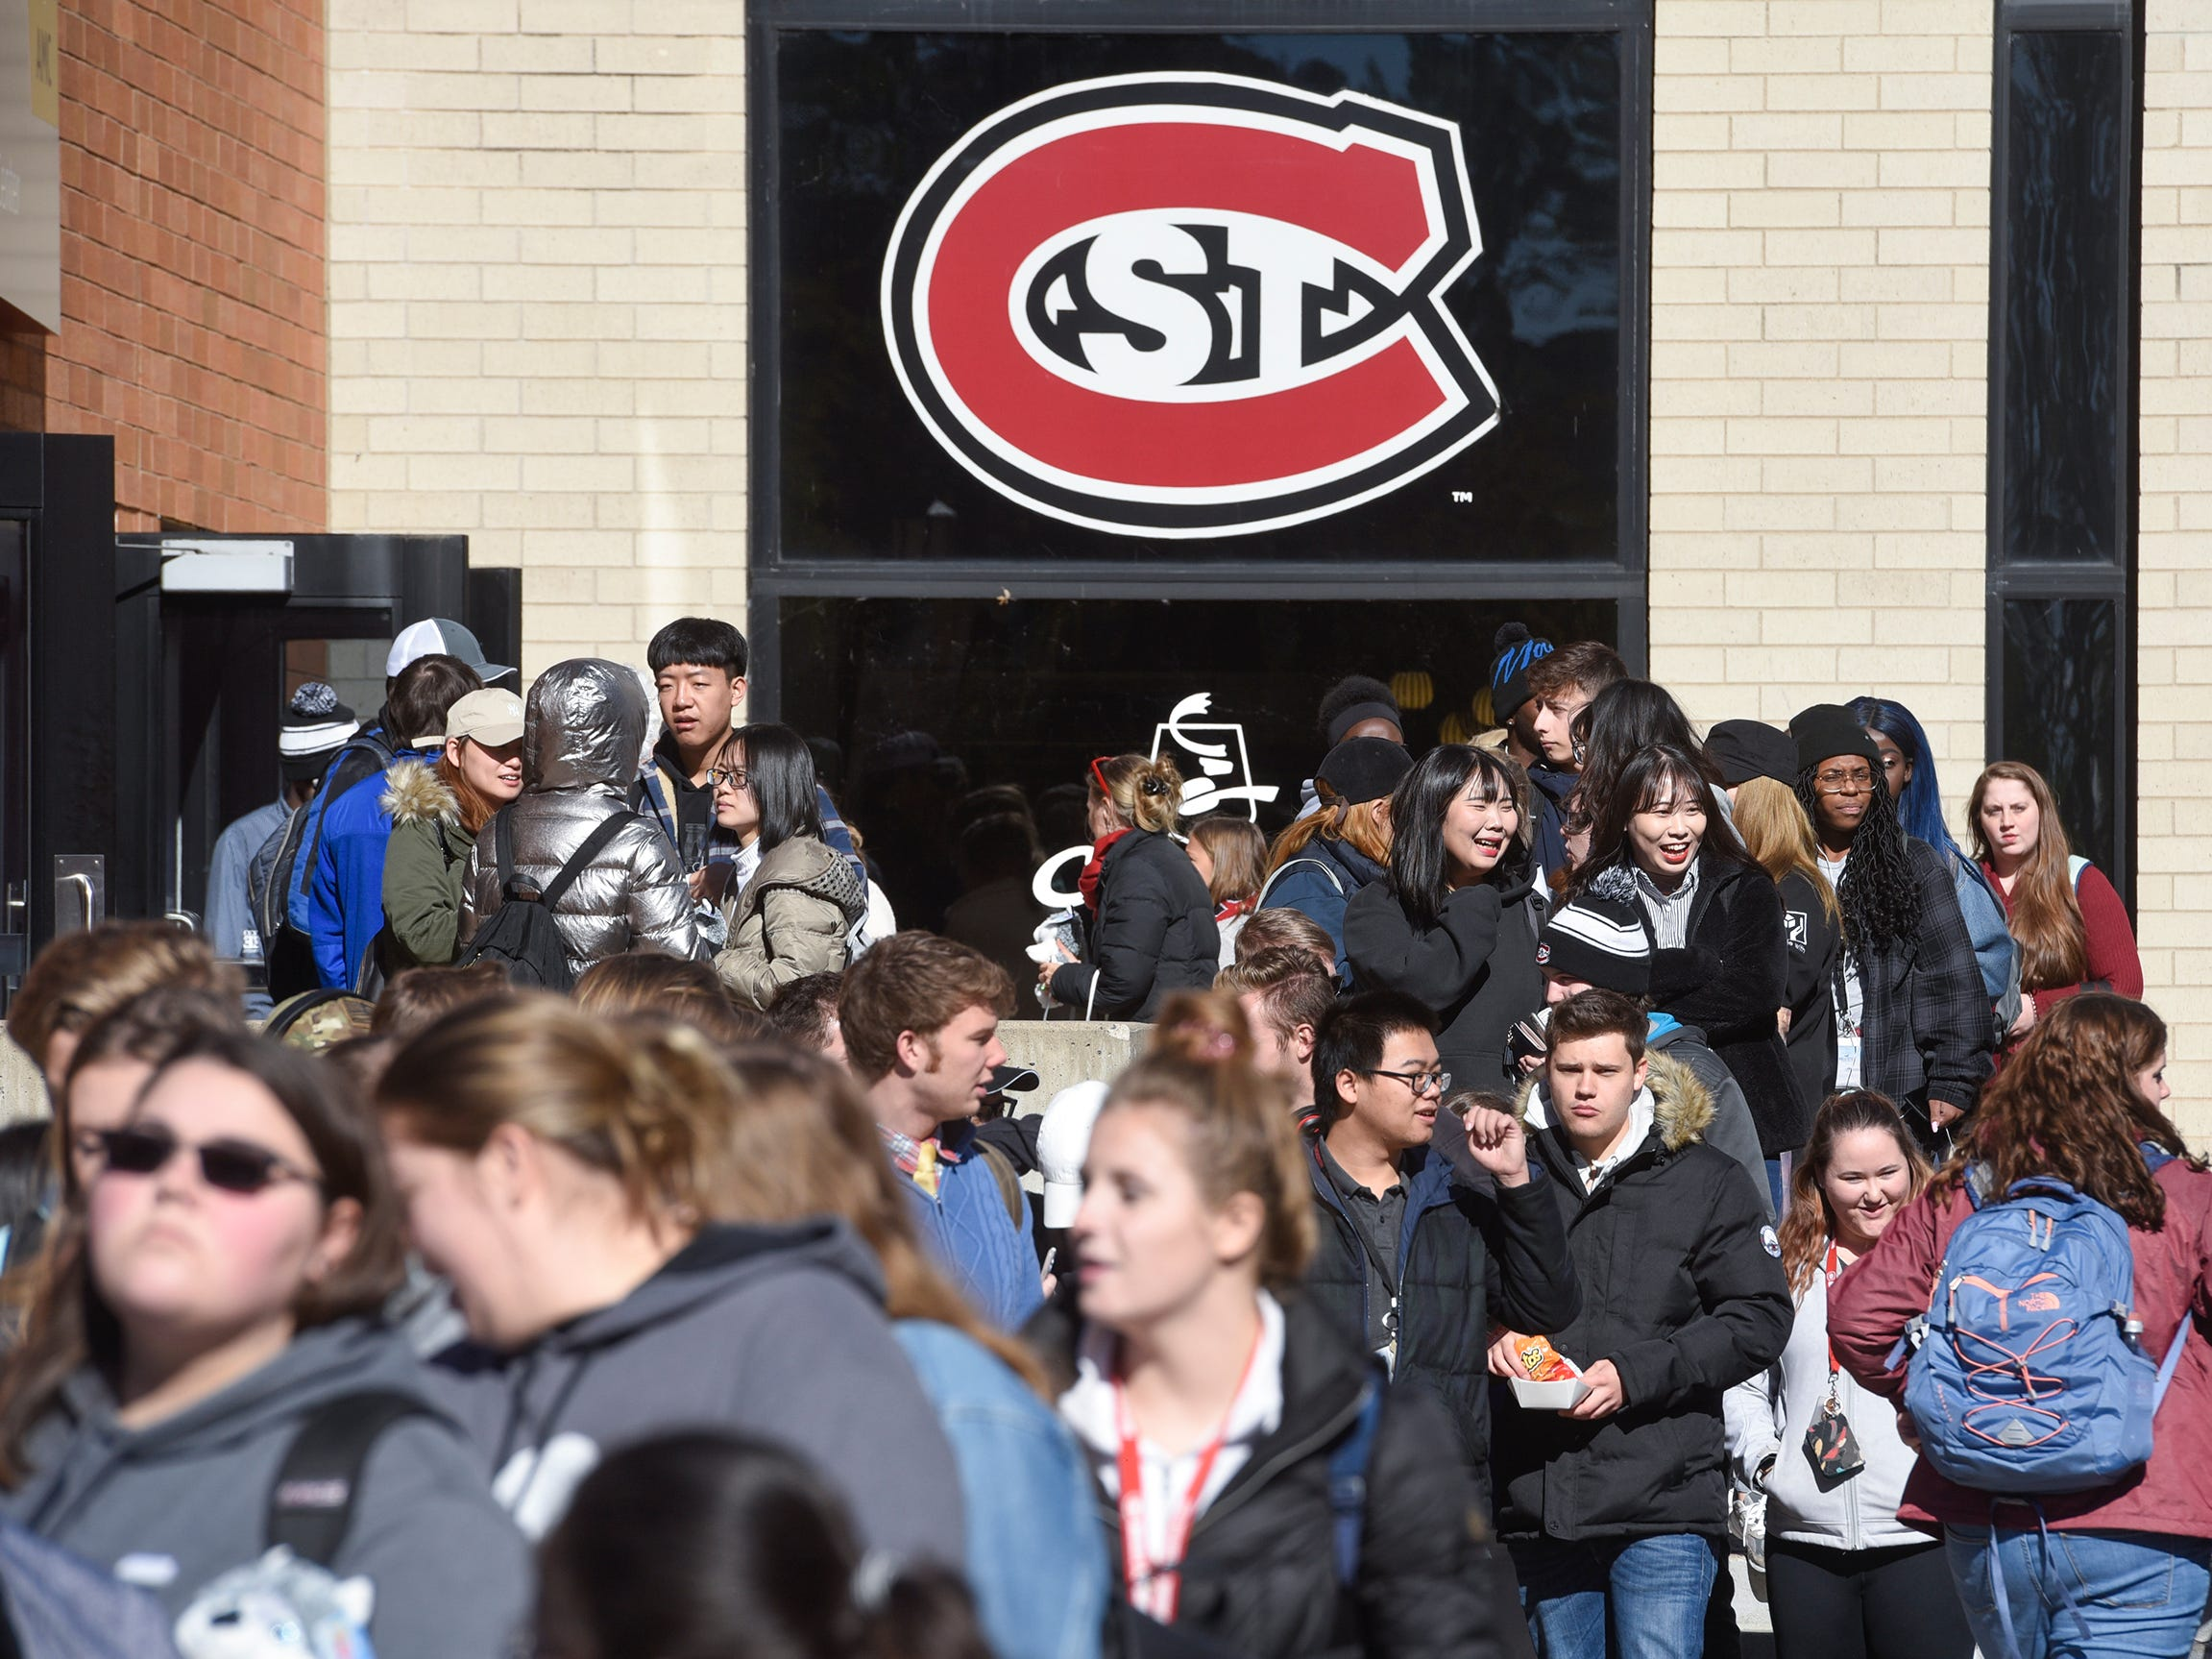 Students fill the Atwood Memorial Center Mall Wednesday, Oct. 17, at St. Cloud State University for homecoming kick-off events.